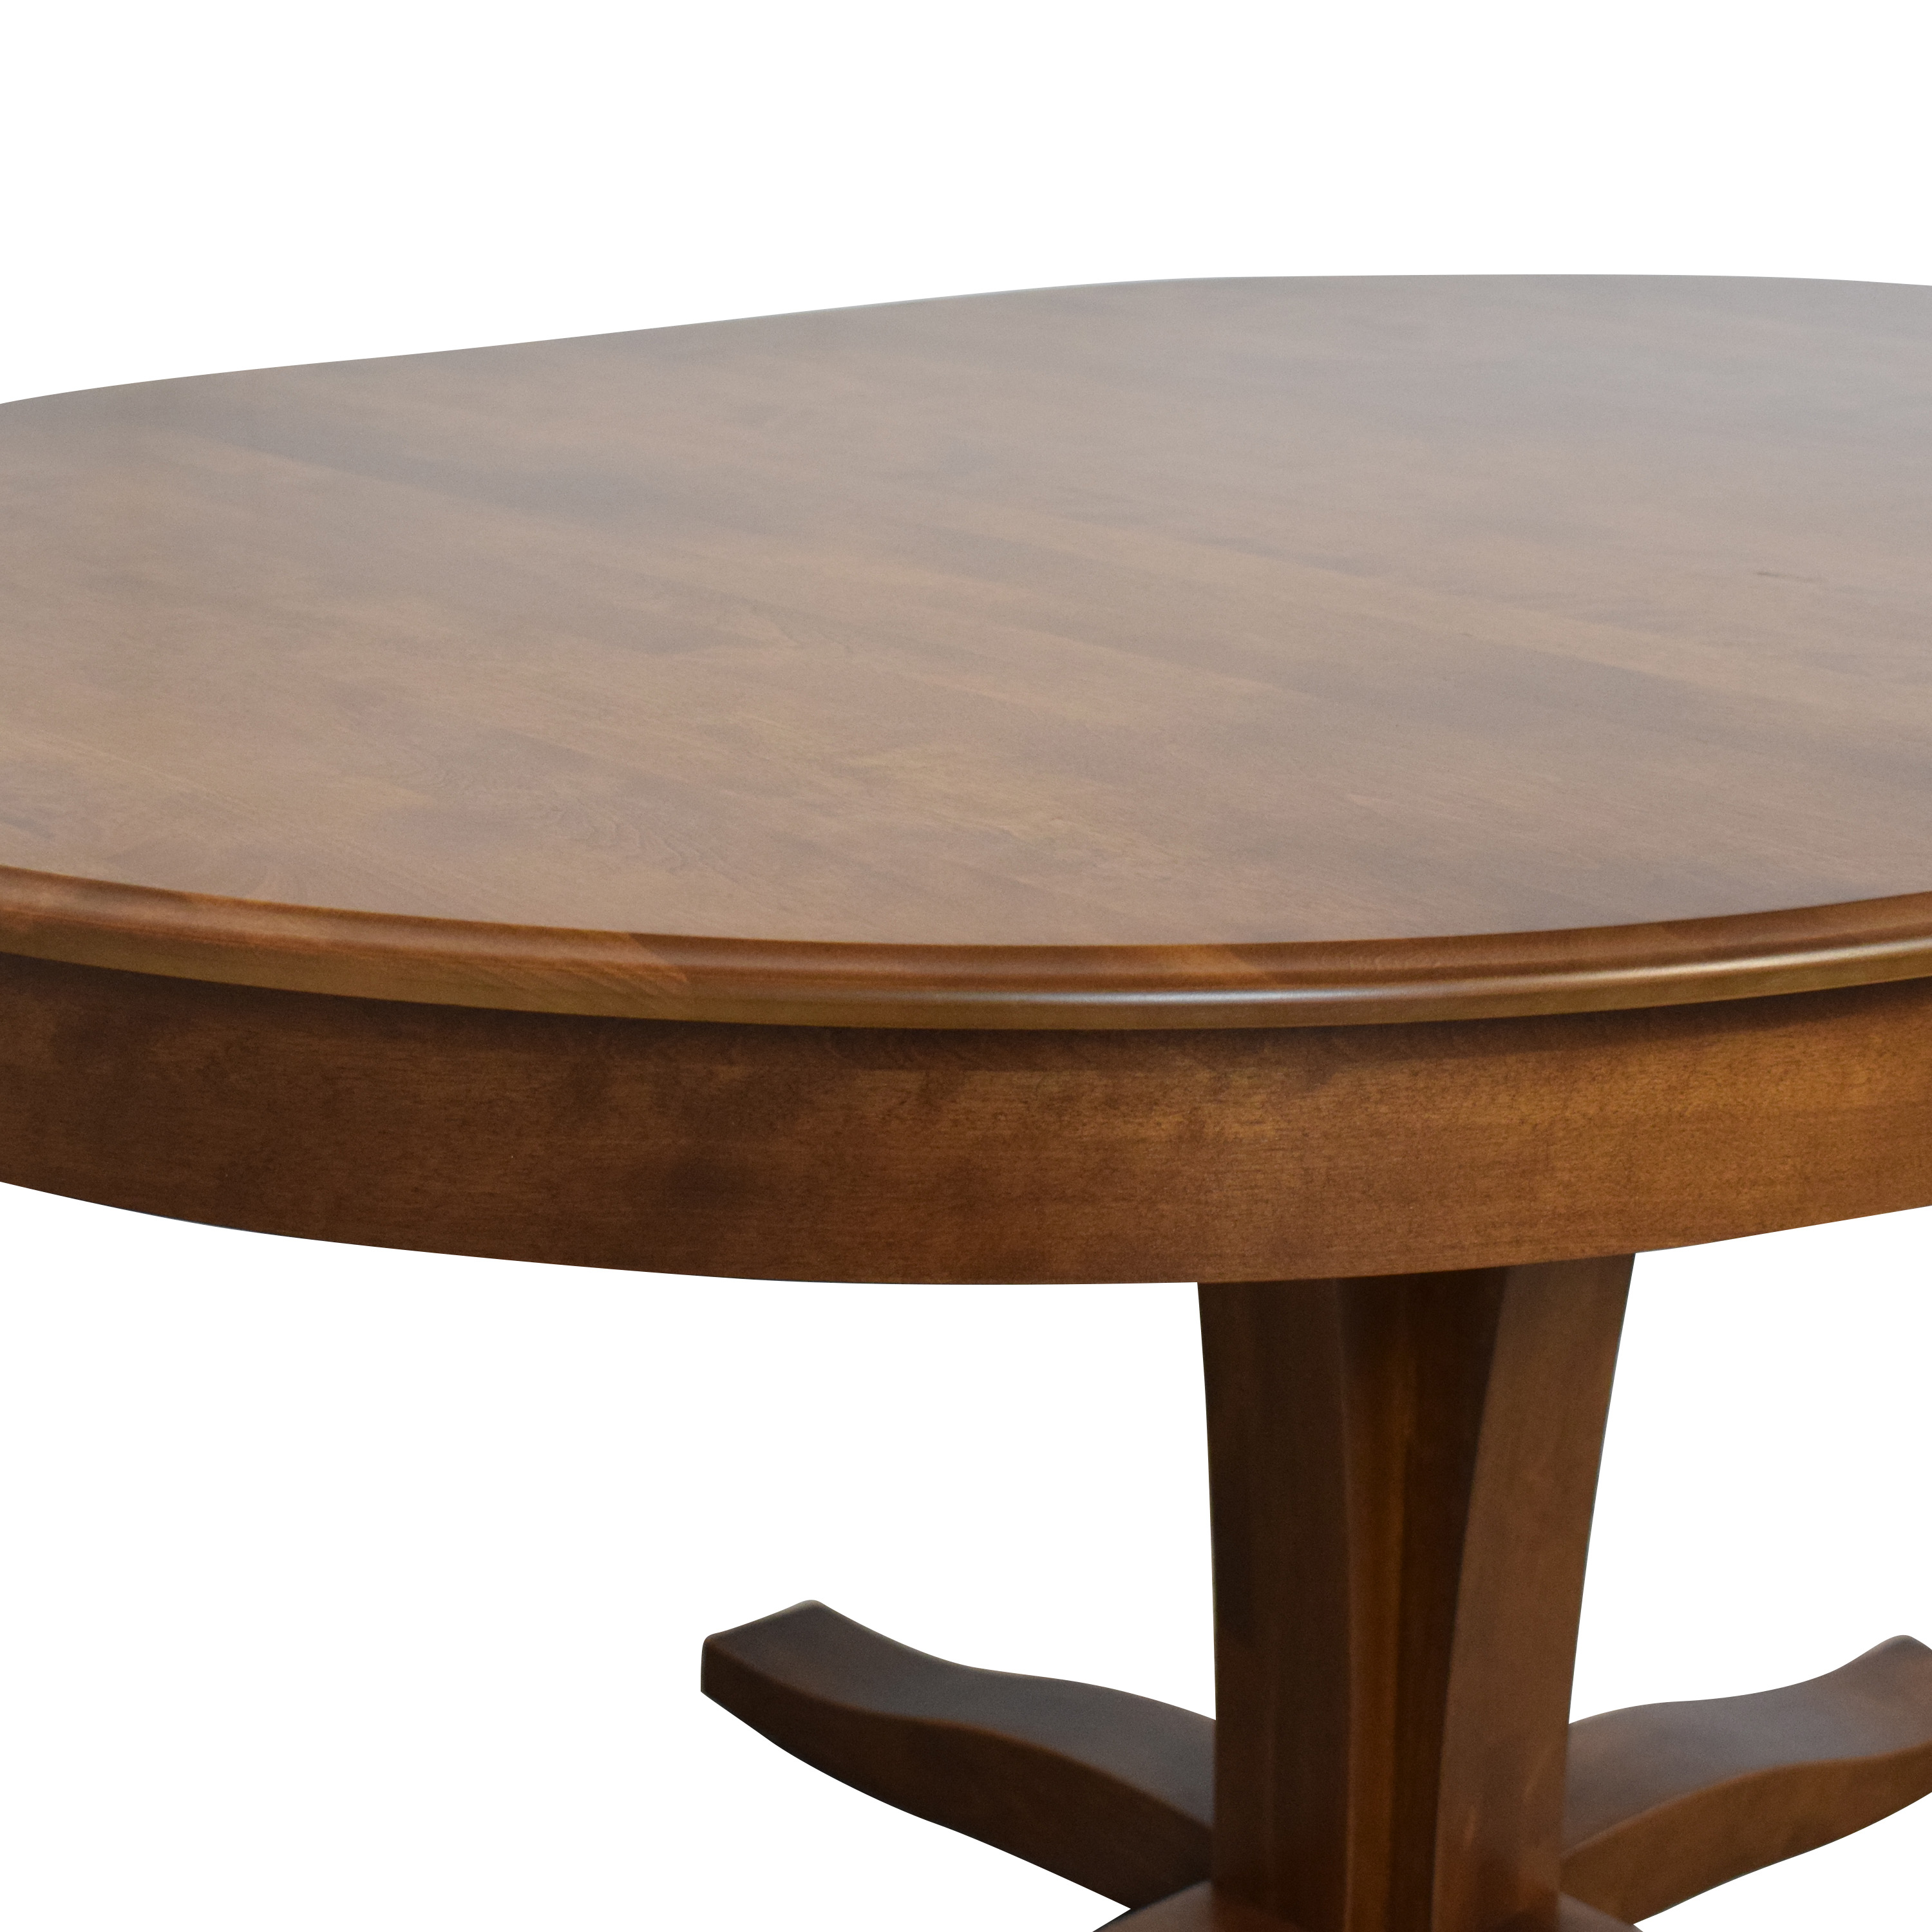 Canadel Canadel Pedestal Dining Table